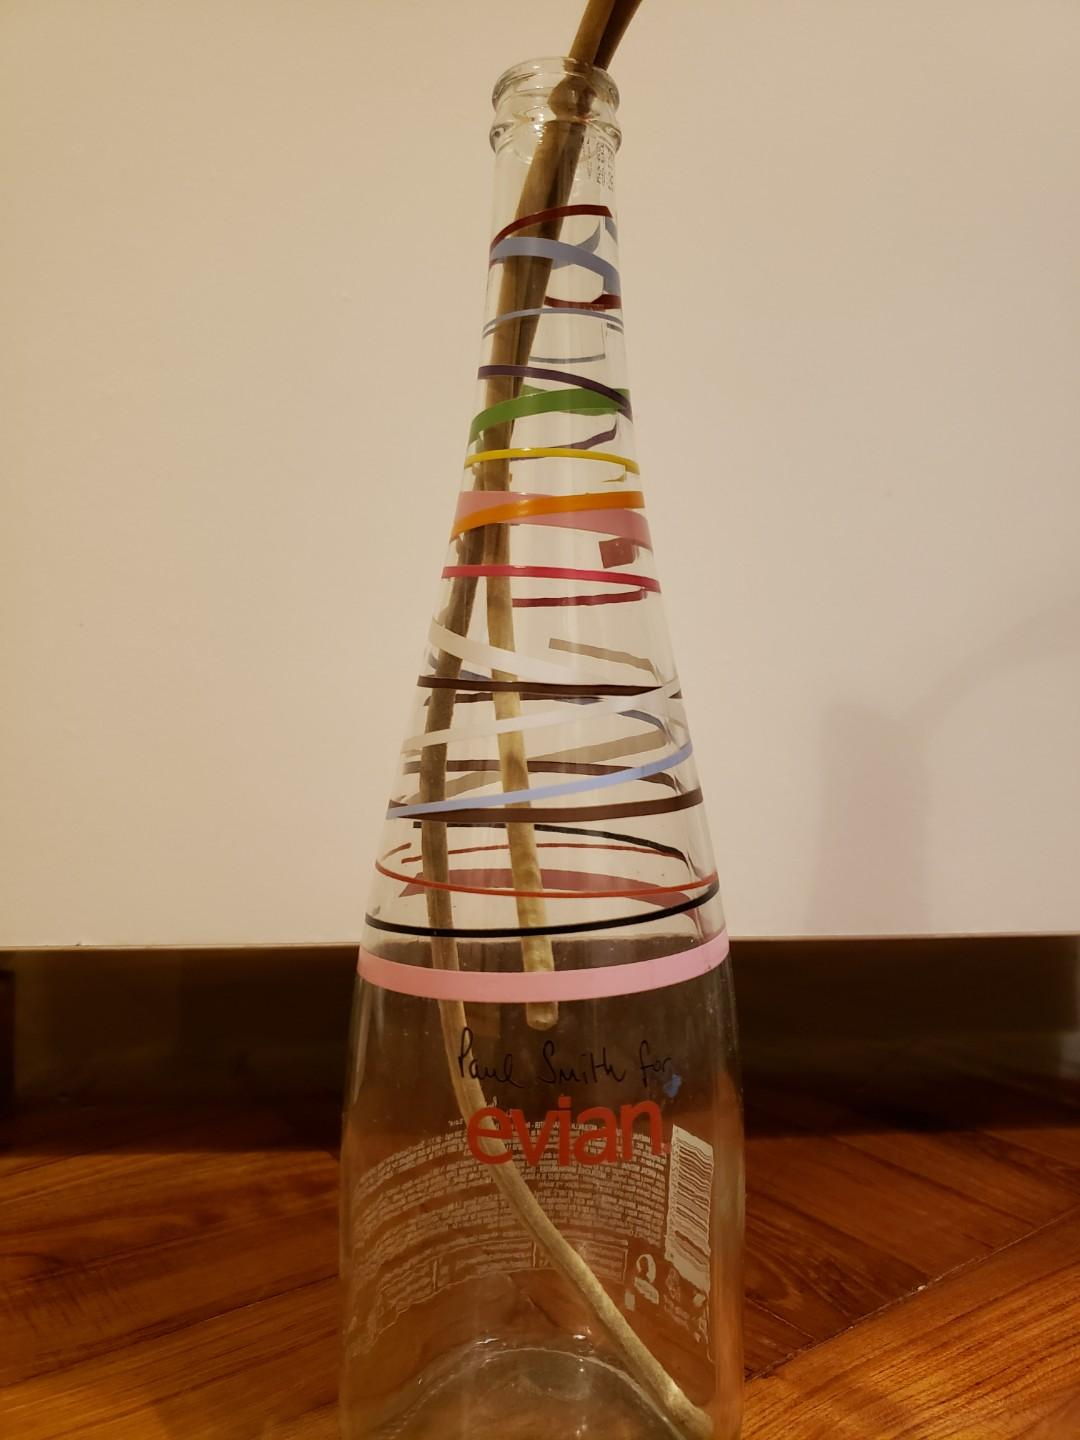 Limited edition Paul Smith x Evian bottle 2010